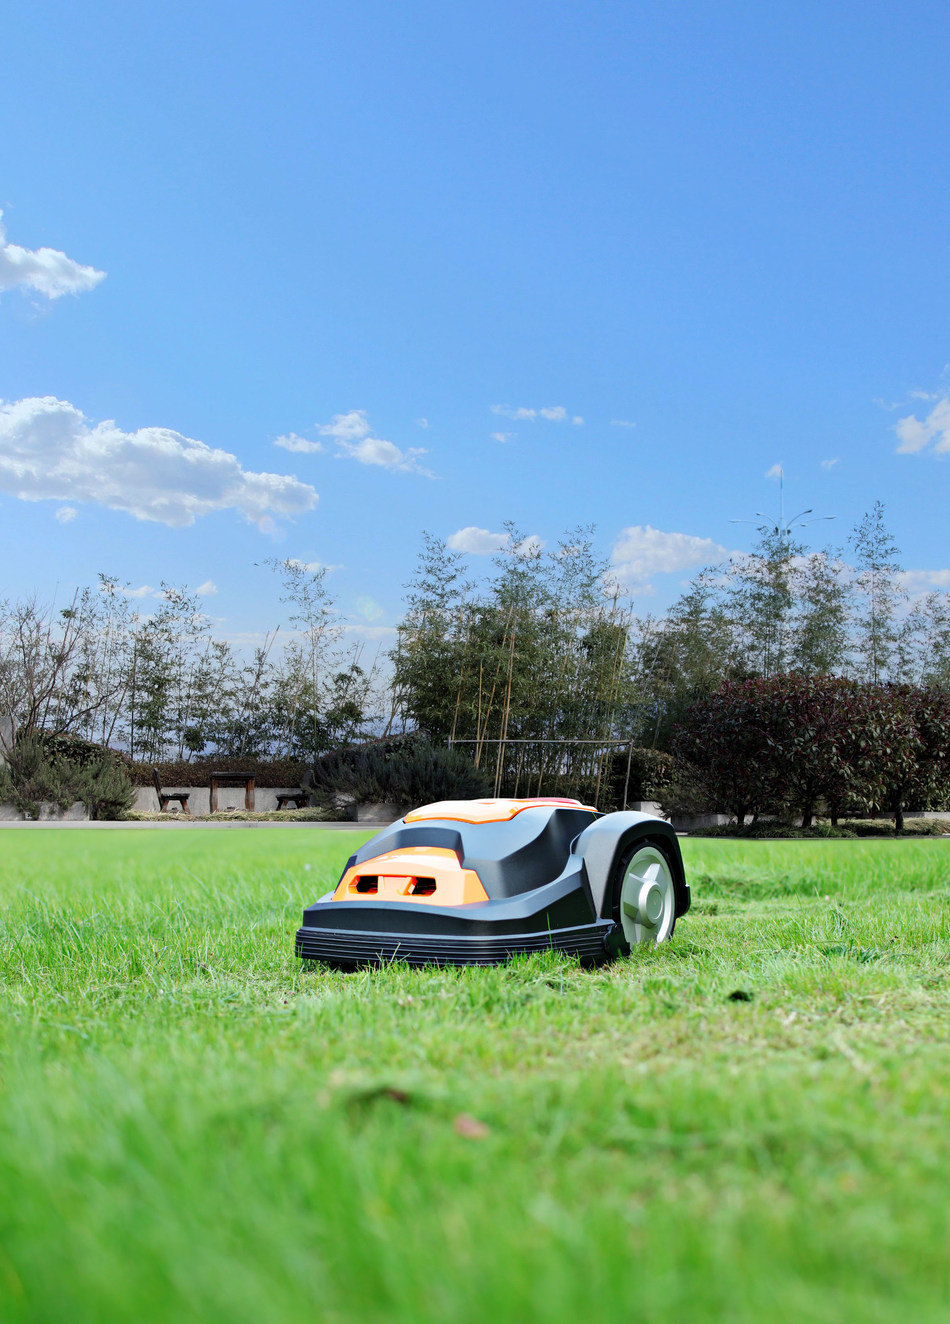 Yard Force Robotic Mowers are widely welcomed and distributed in DIY channel of Western Europe